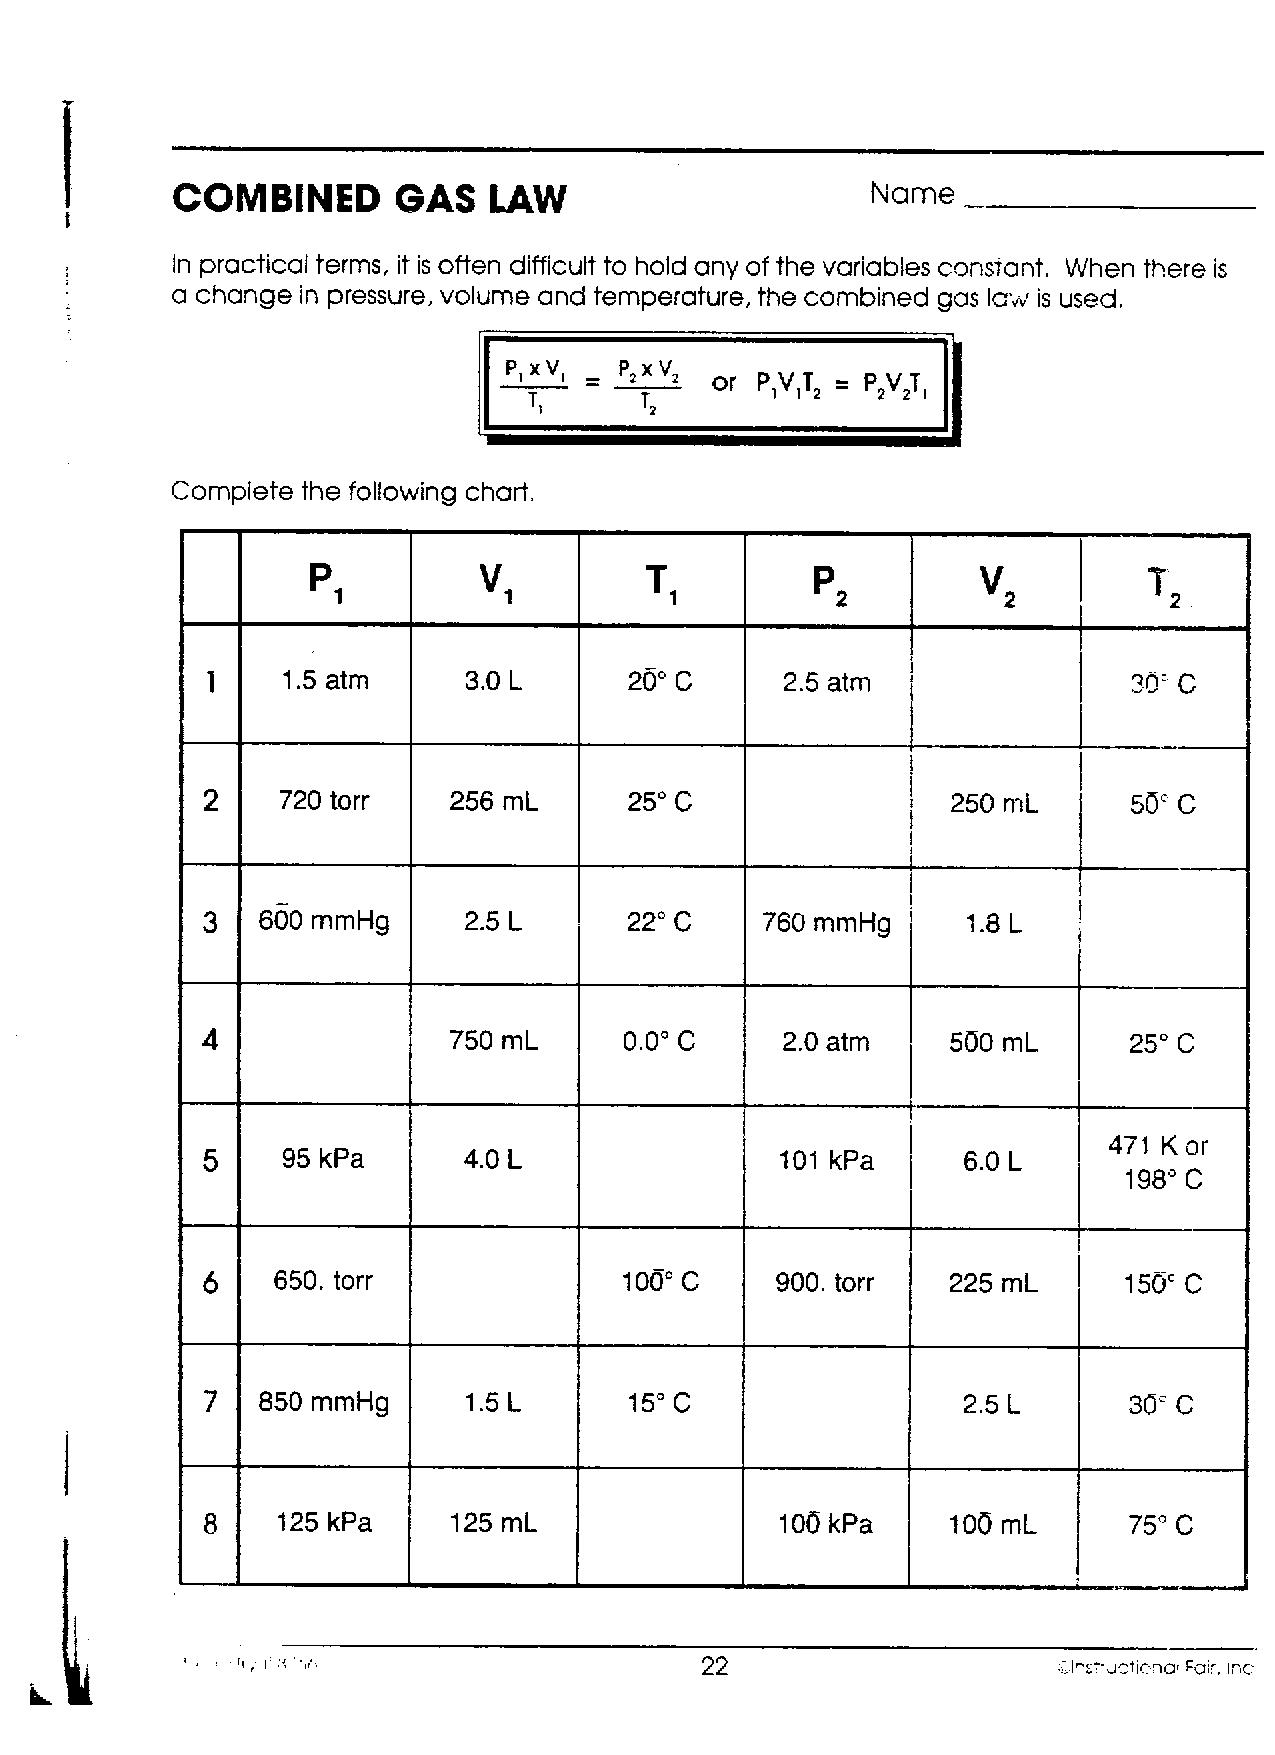 Chem IIB Mr Phelps Big Rapids HS – Combined Gas Law Worksheet Answers